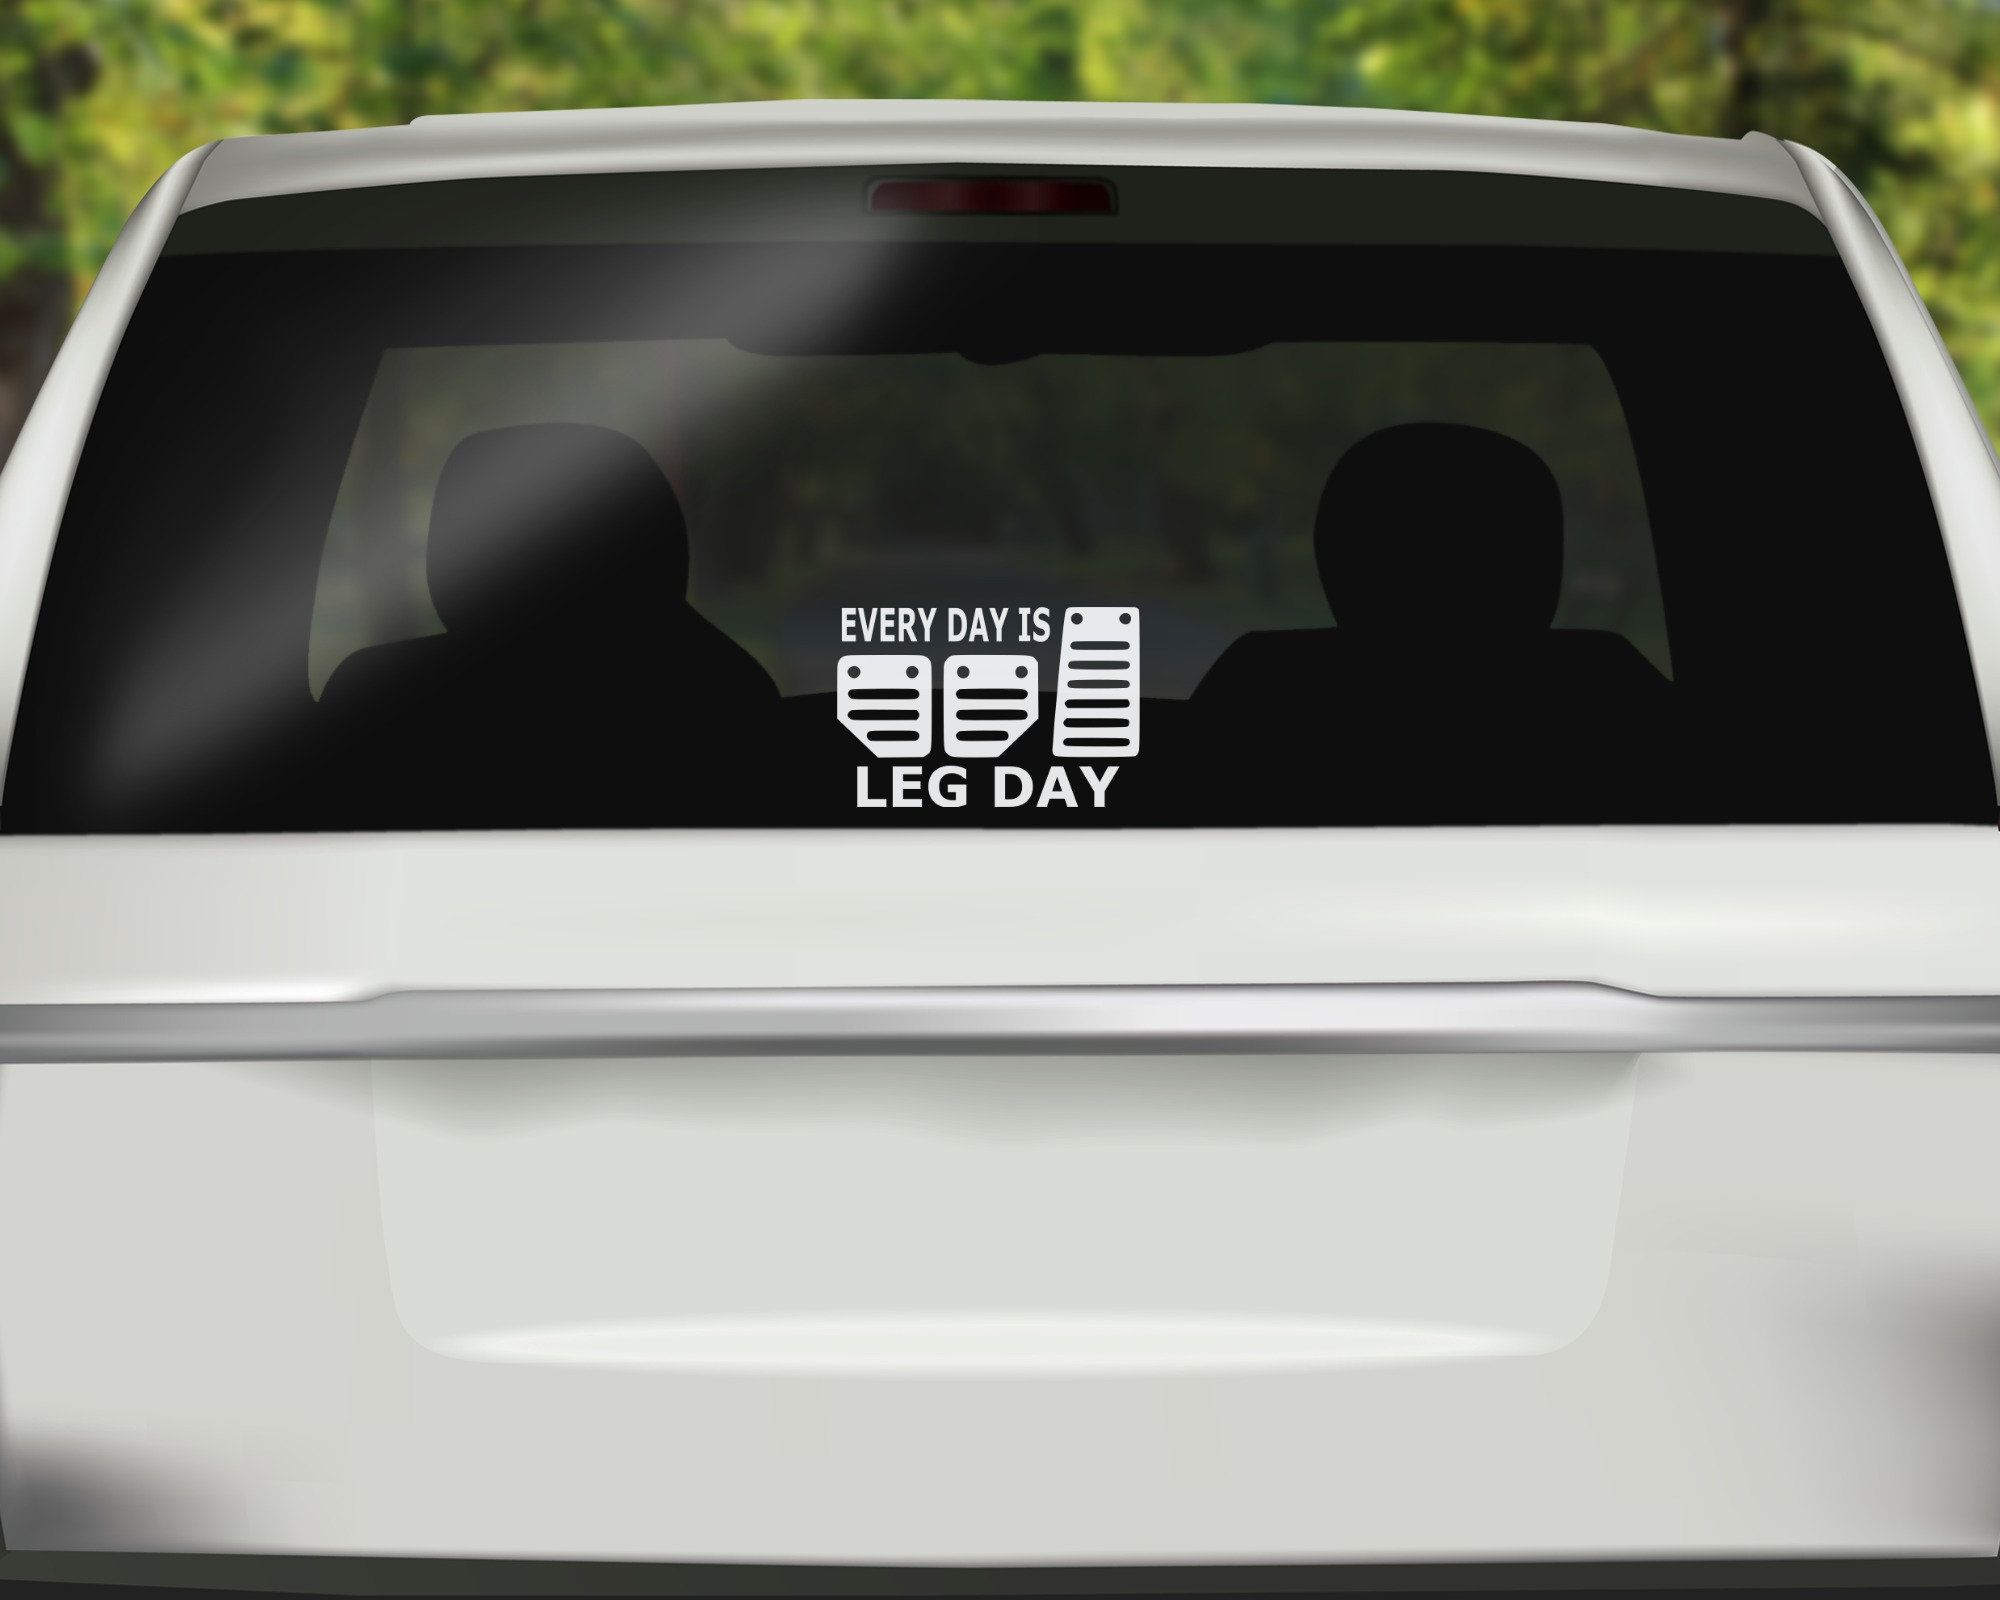 Every Day Is Leg Day Decal Funny Car Decal Car Decal Driving Decal Driving Decal Car Sticker Vinyl Decal Funny Car Decals Kids Decals Funny Decals [ 1600 x 2000 Pixel ]